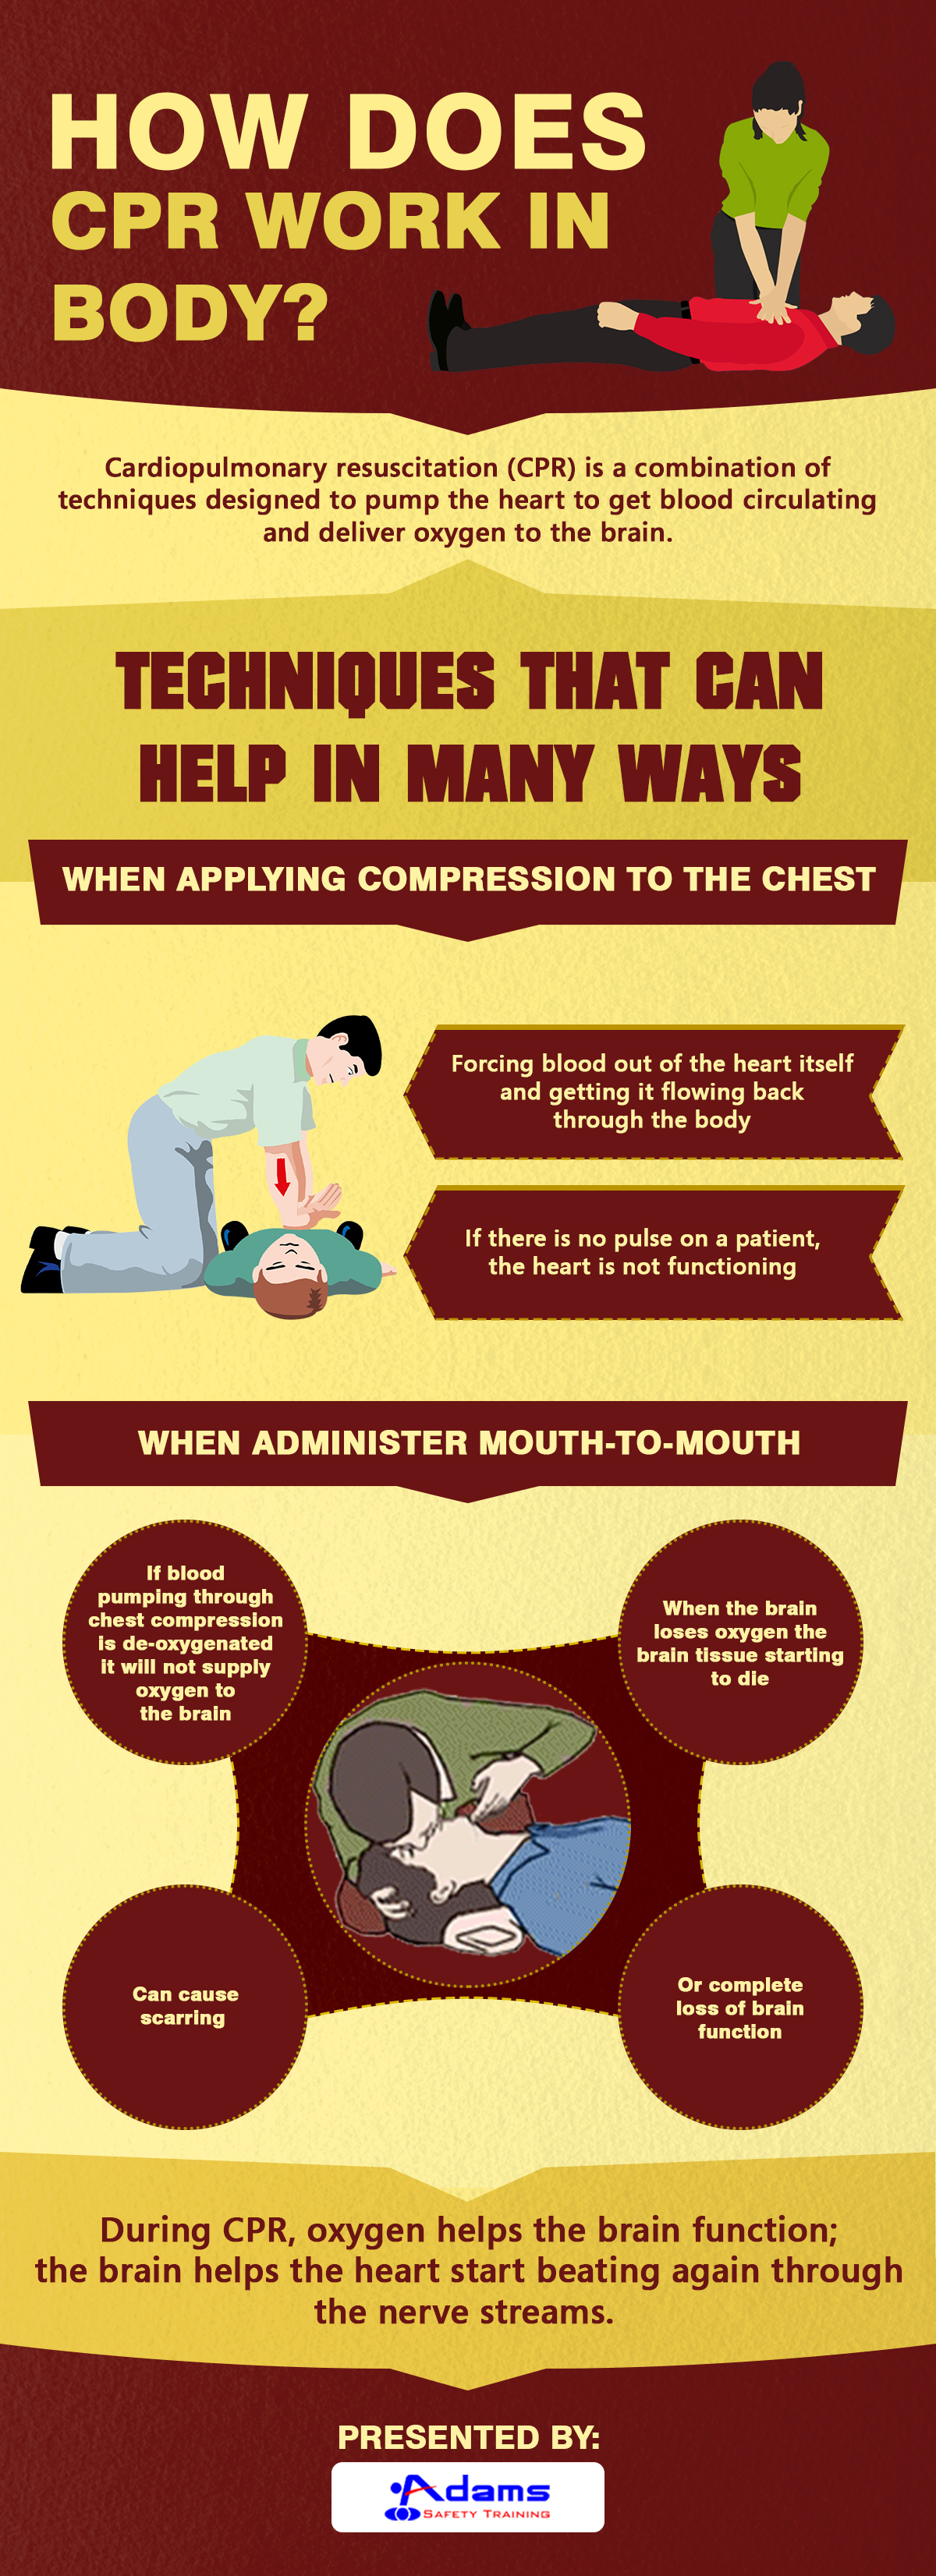 How CPR works